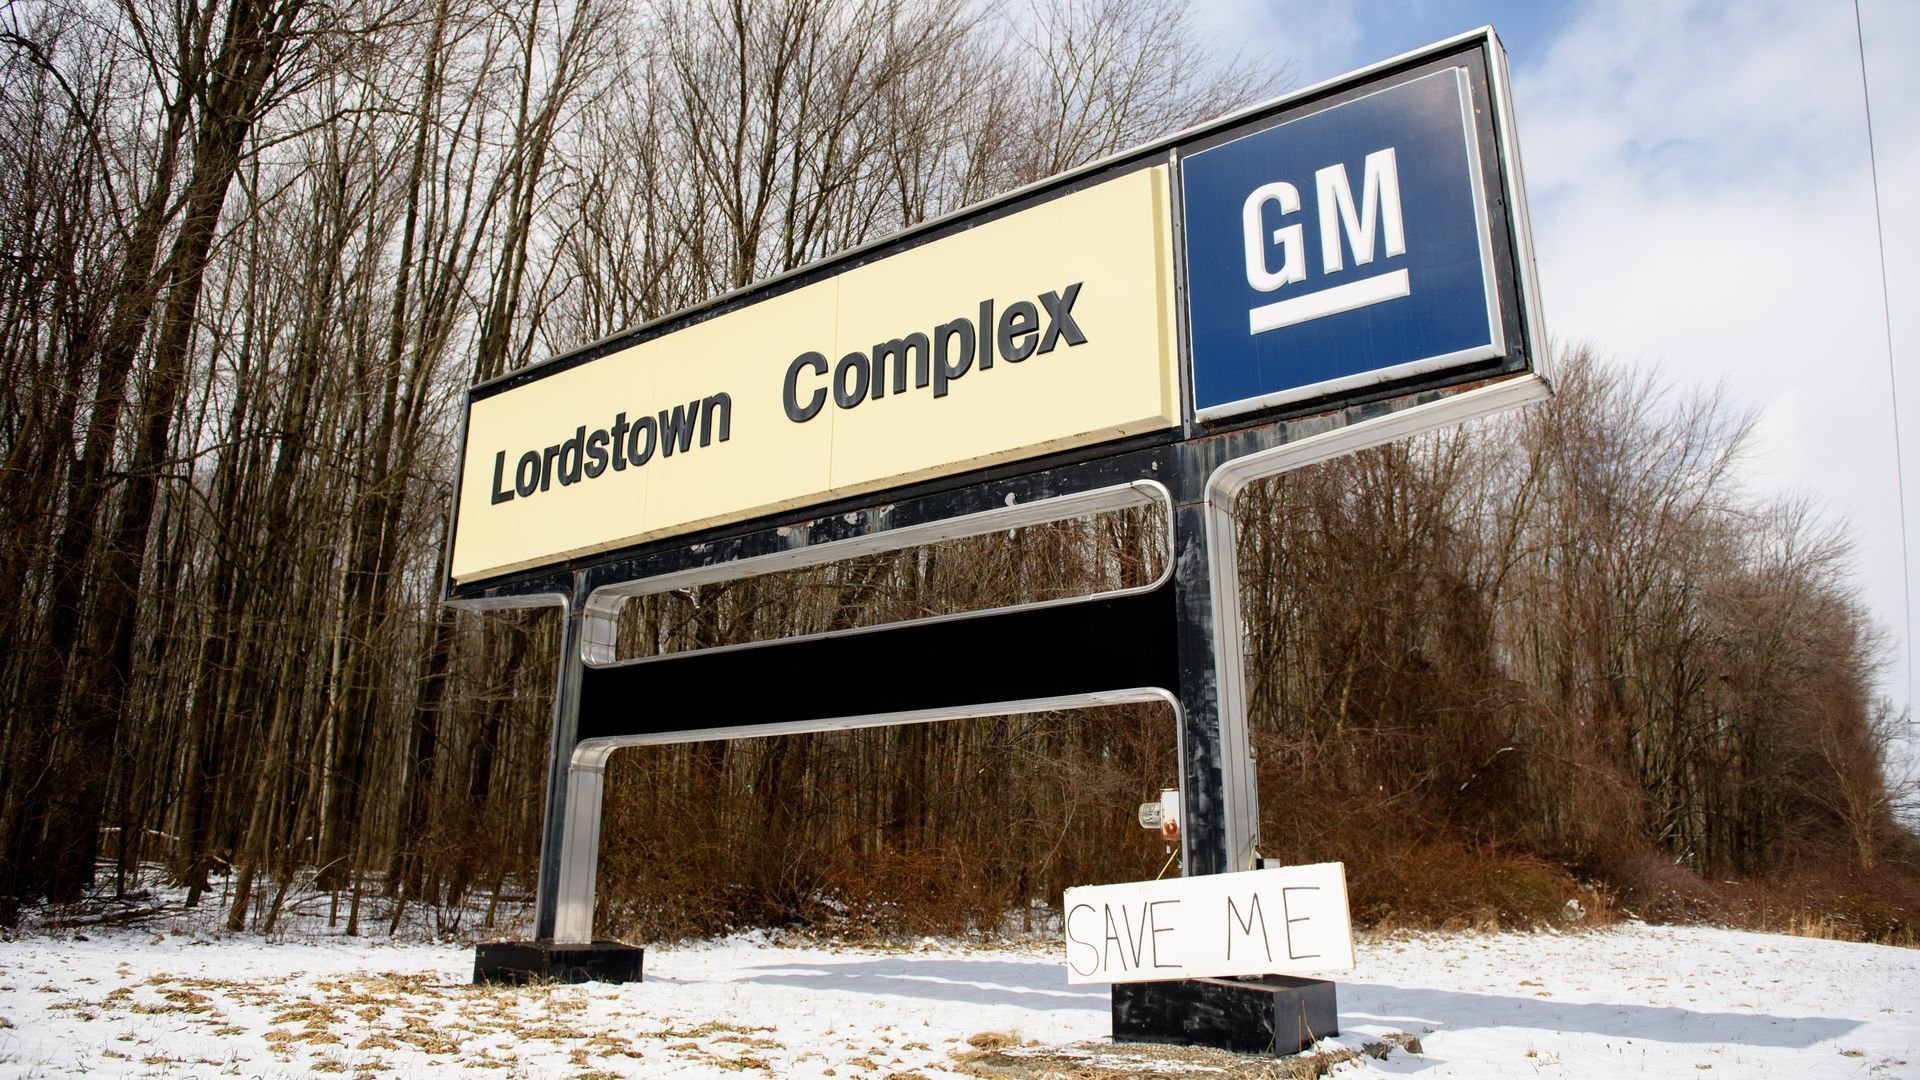 """In this image, handmade sign reading """"save me"""" leans against a large General Motors sign for the closed Lordstown Complex."""